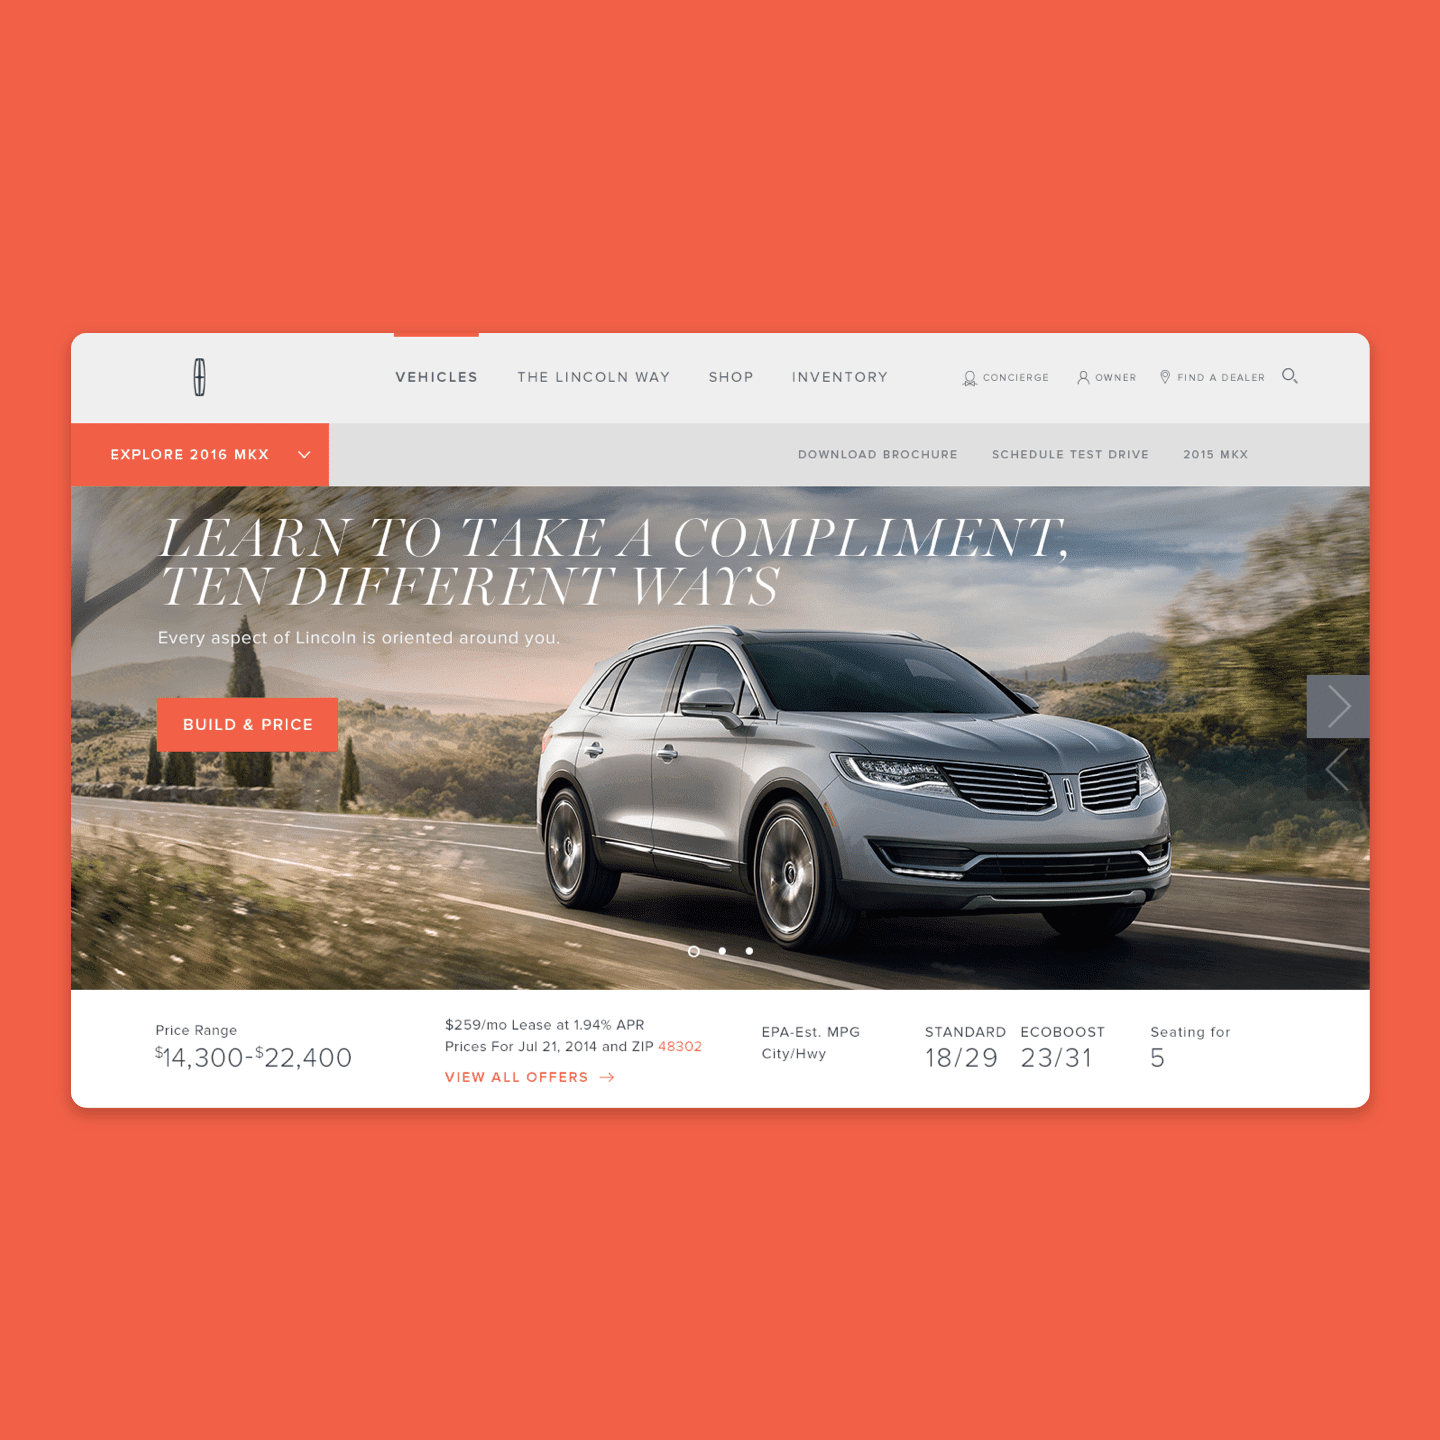 LINCOLN.COM VEHICLE HOMEPAGE